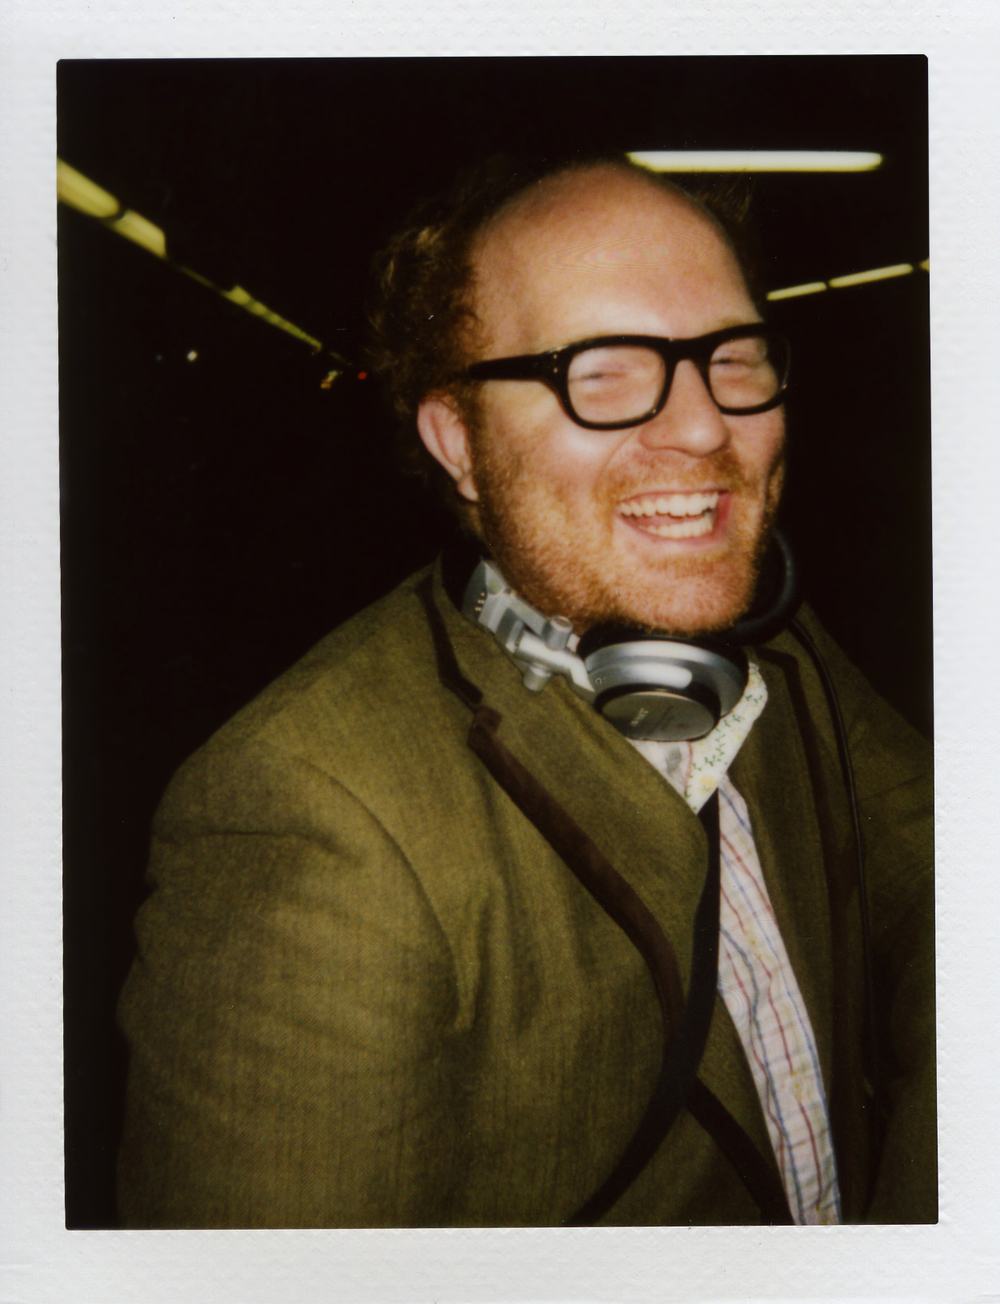 Instax photo by William Juseck